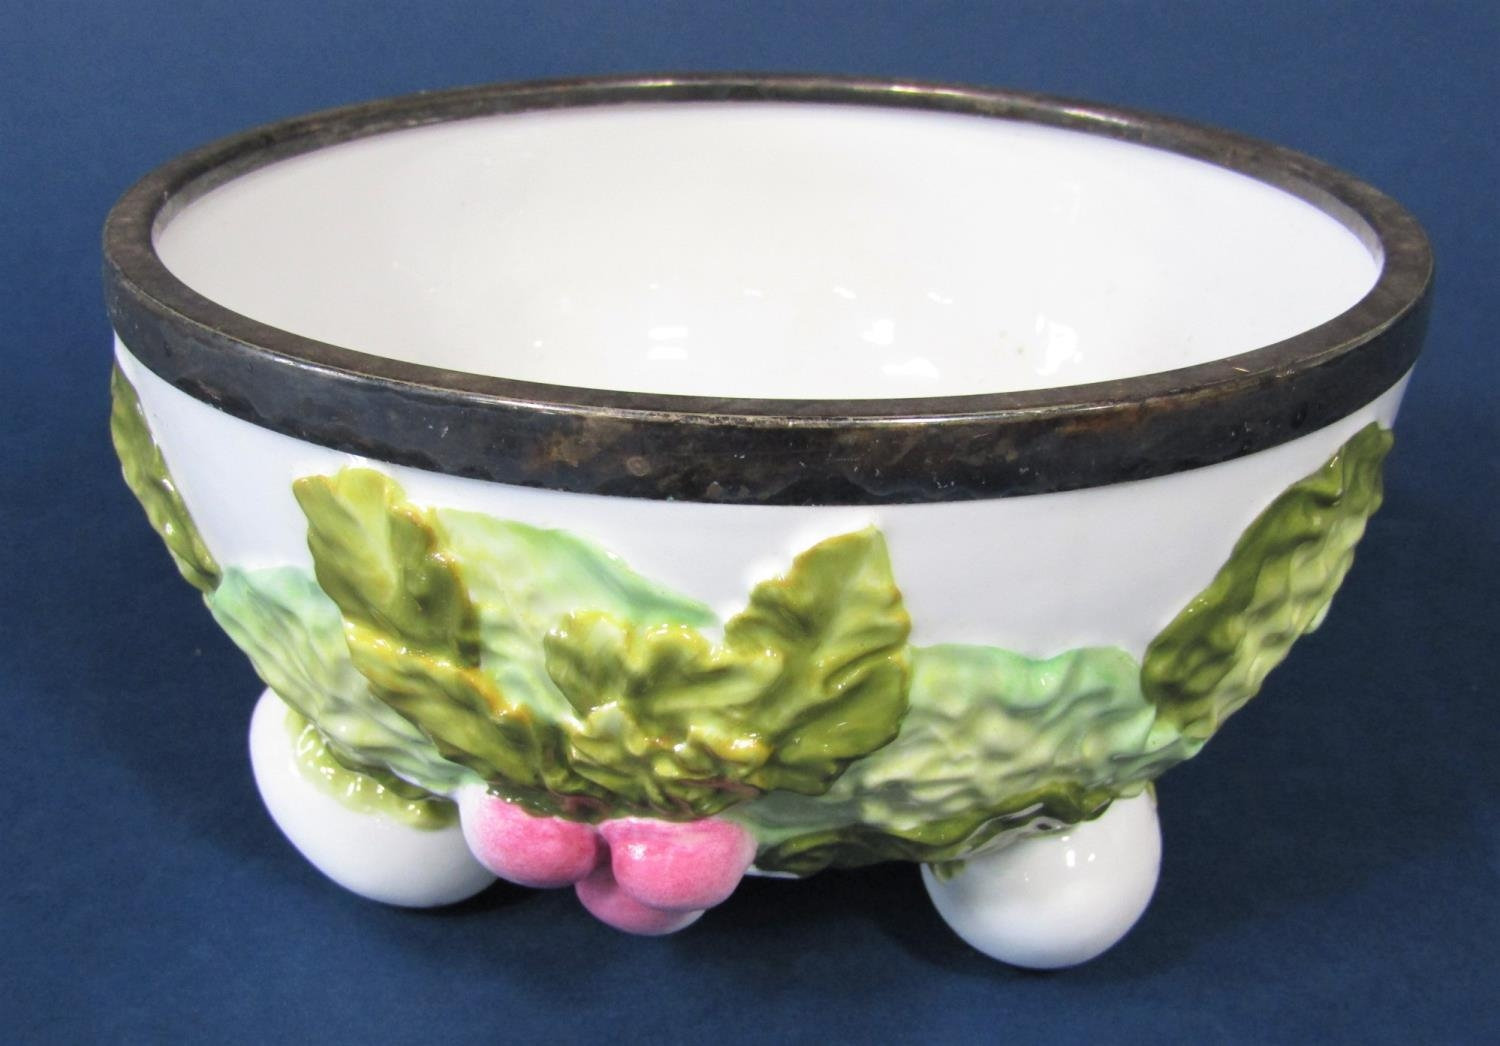 A 19th century majolica type bowl modelled and lettuce and radishes, raised on three egg shaped